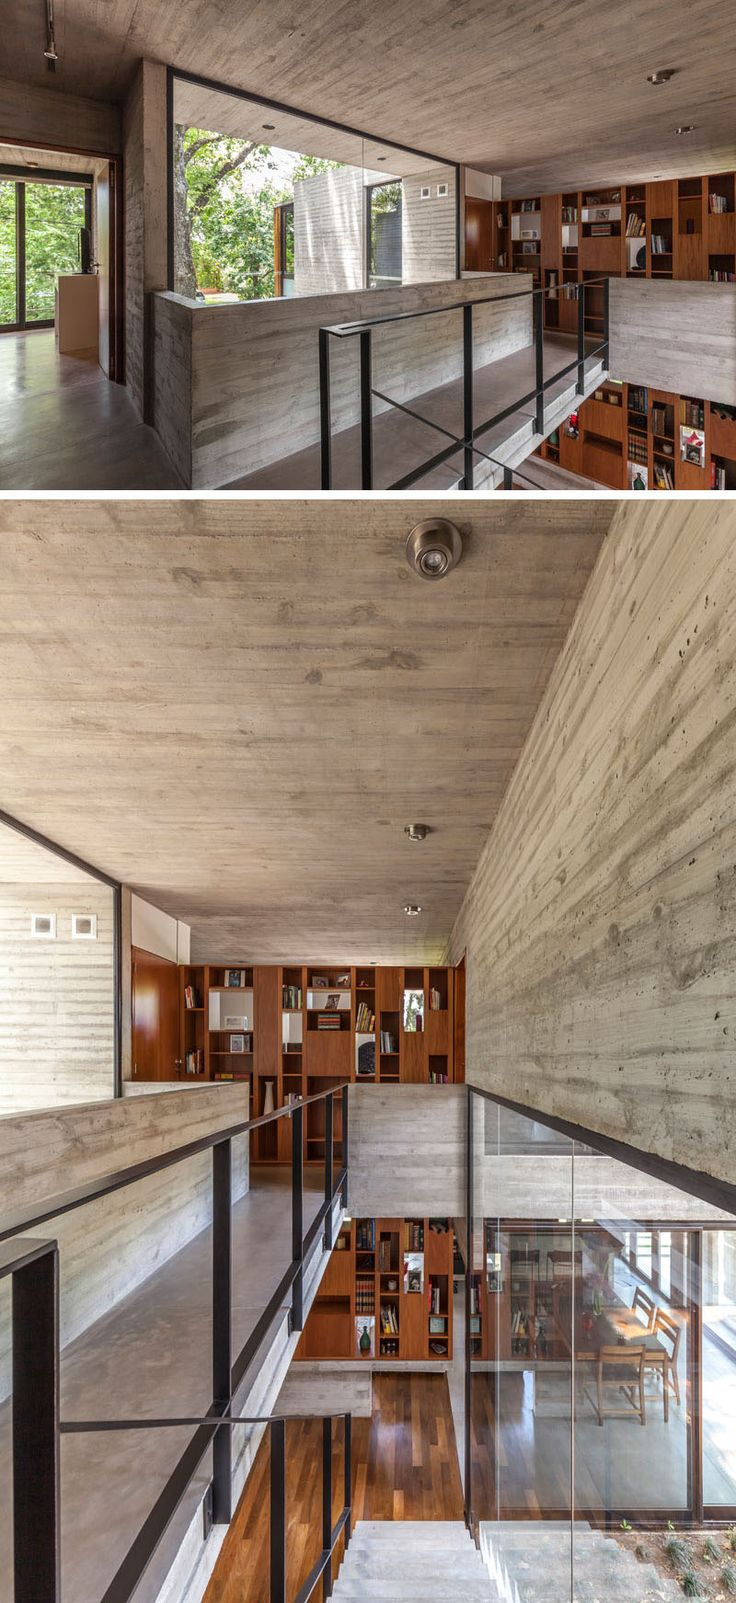 At the top of these concrete stairs and across a small bridge, there's wood cabinetry that matches the shelving downstairs. #WoodShelving #Concrete